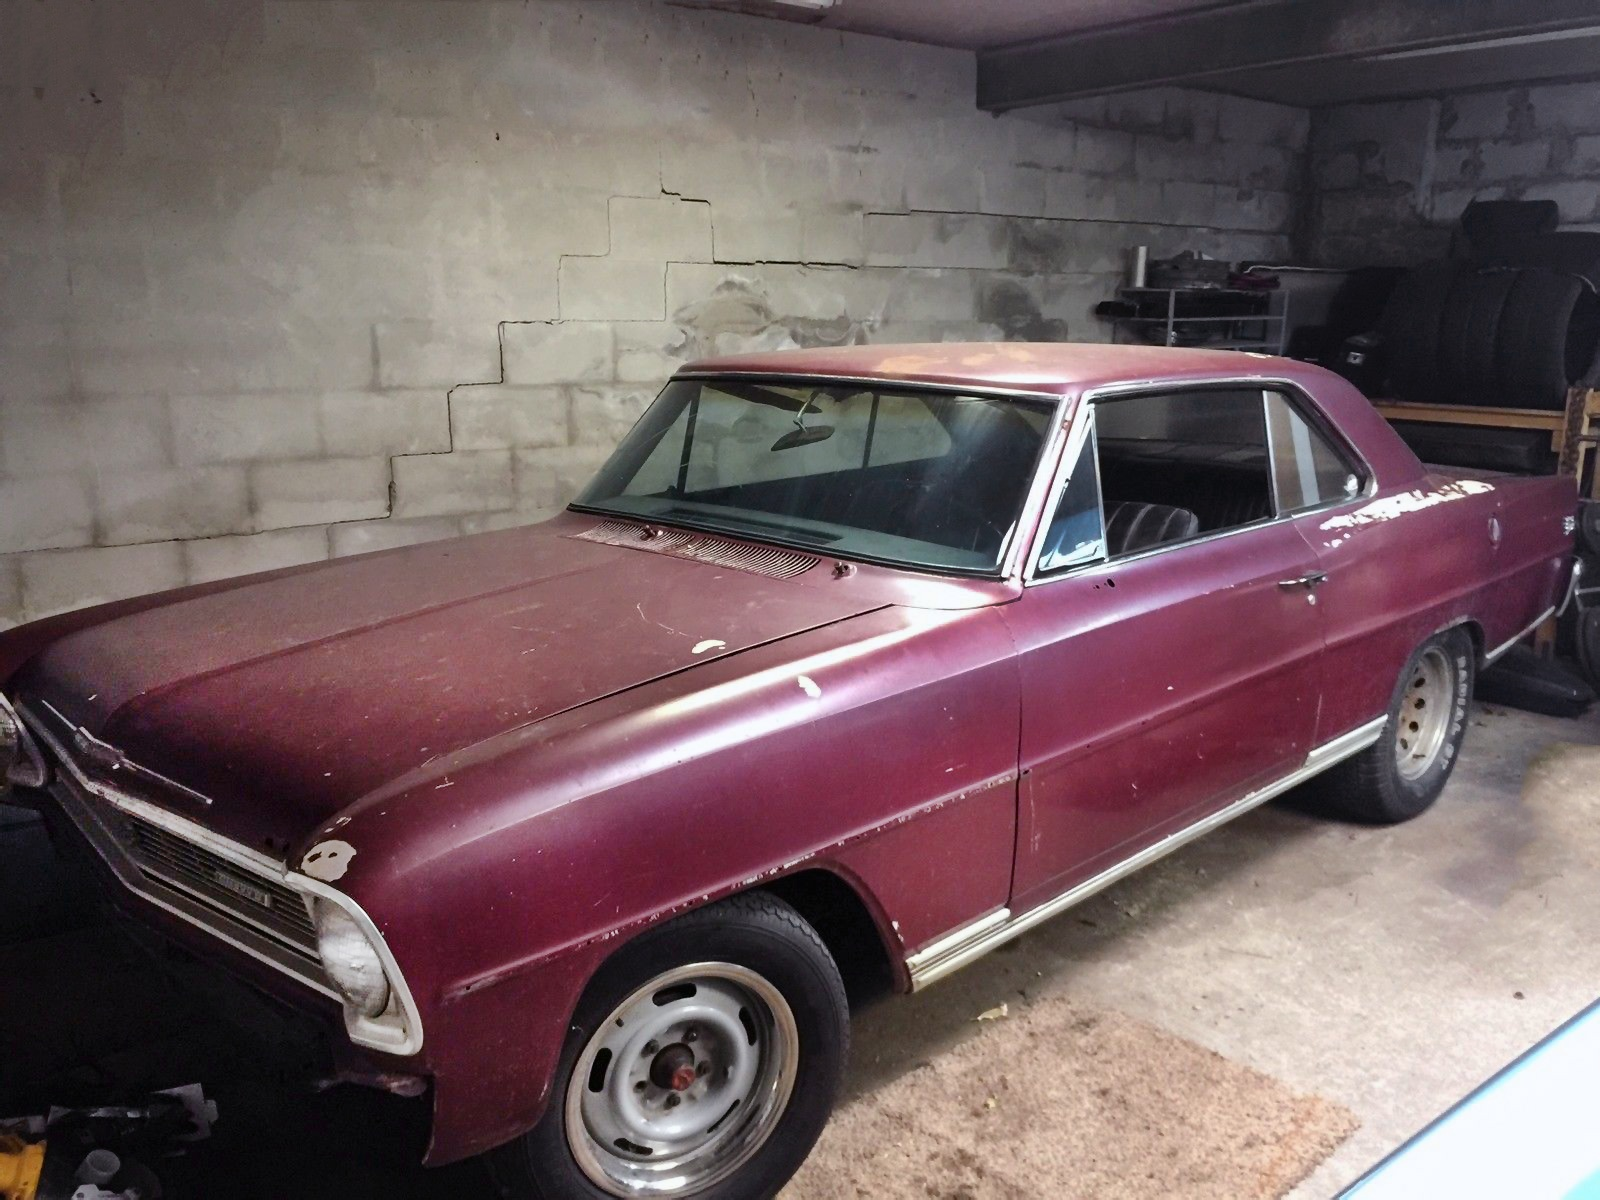 1966 Chevy Nova Project Car For Sale - 2019-2020 New